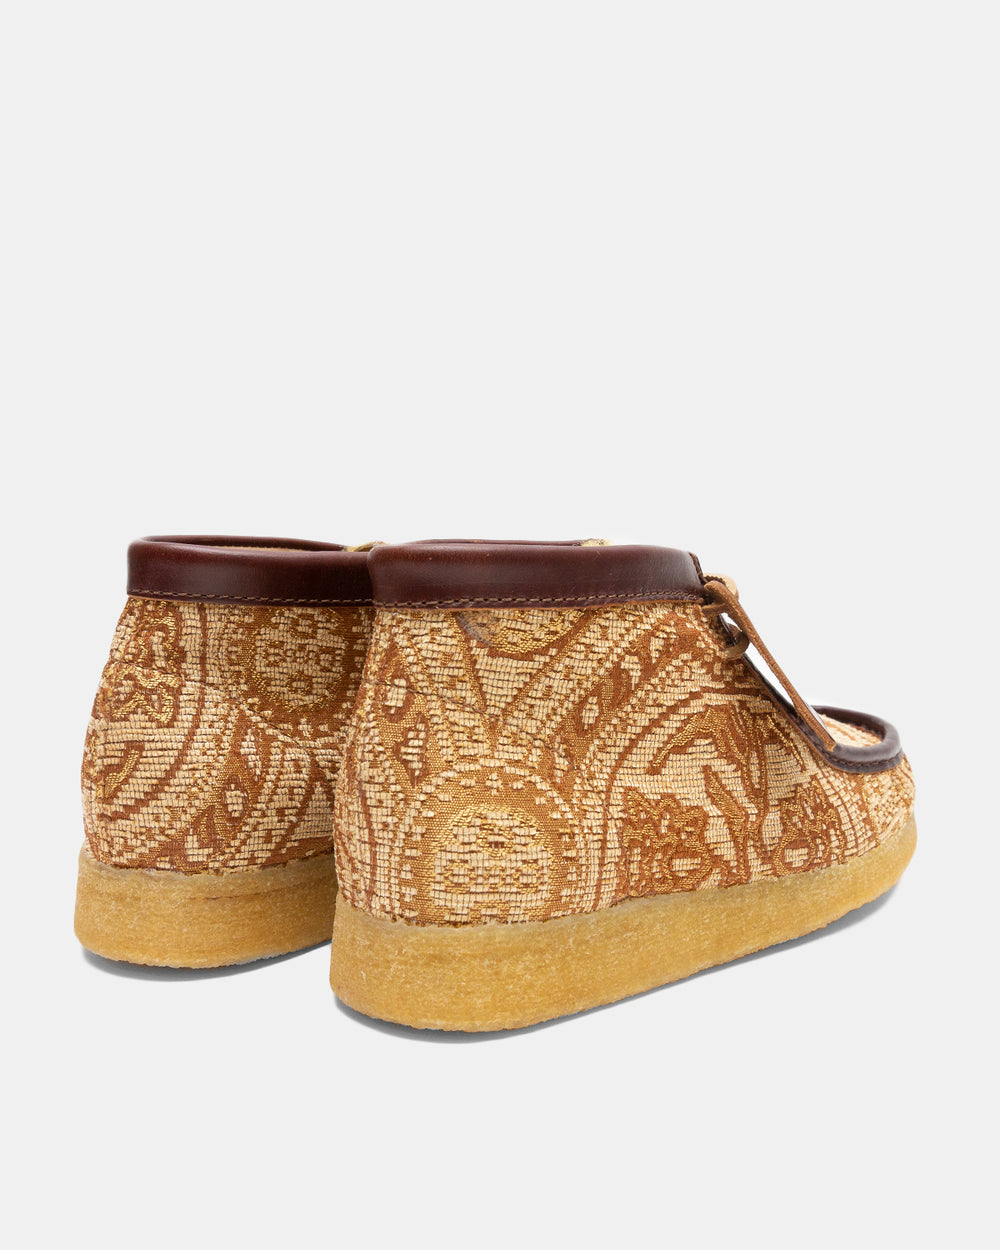 Clarks - Clarks x Todd Snyder Wallabee Boot (Brown Paisley)